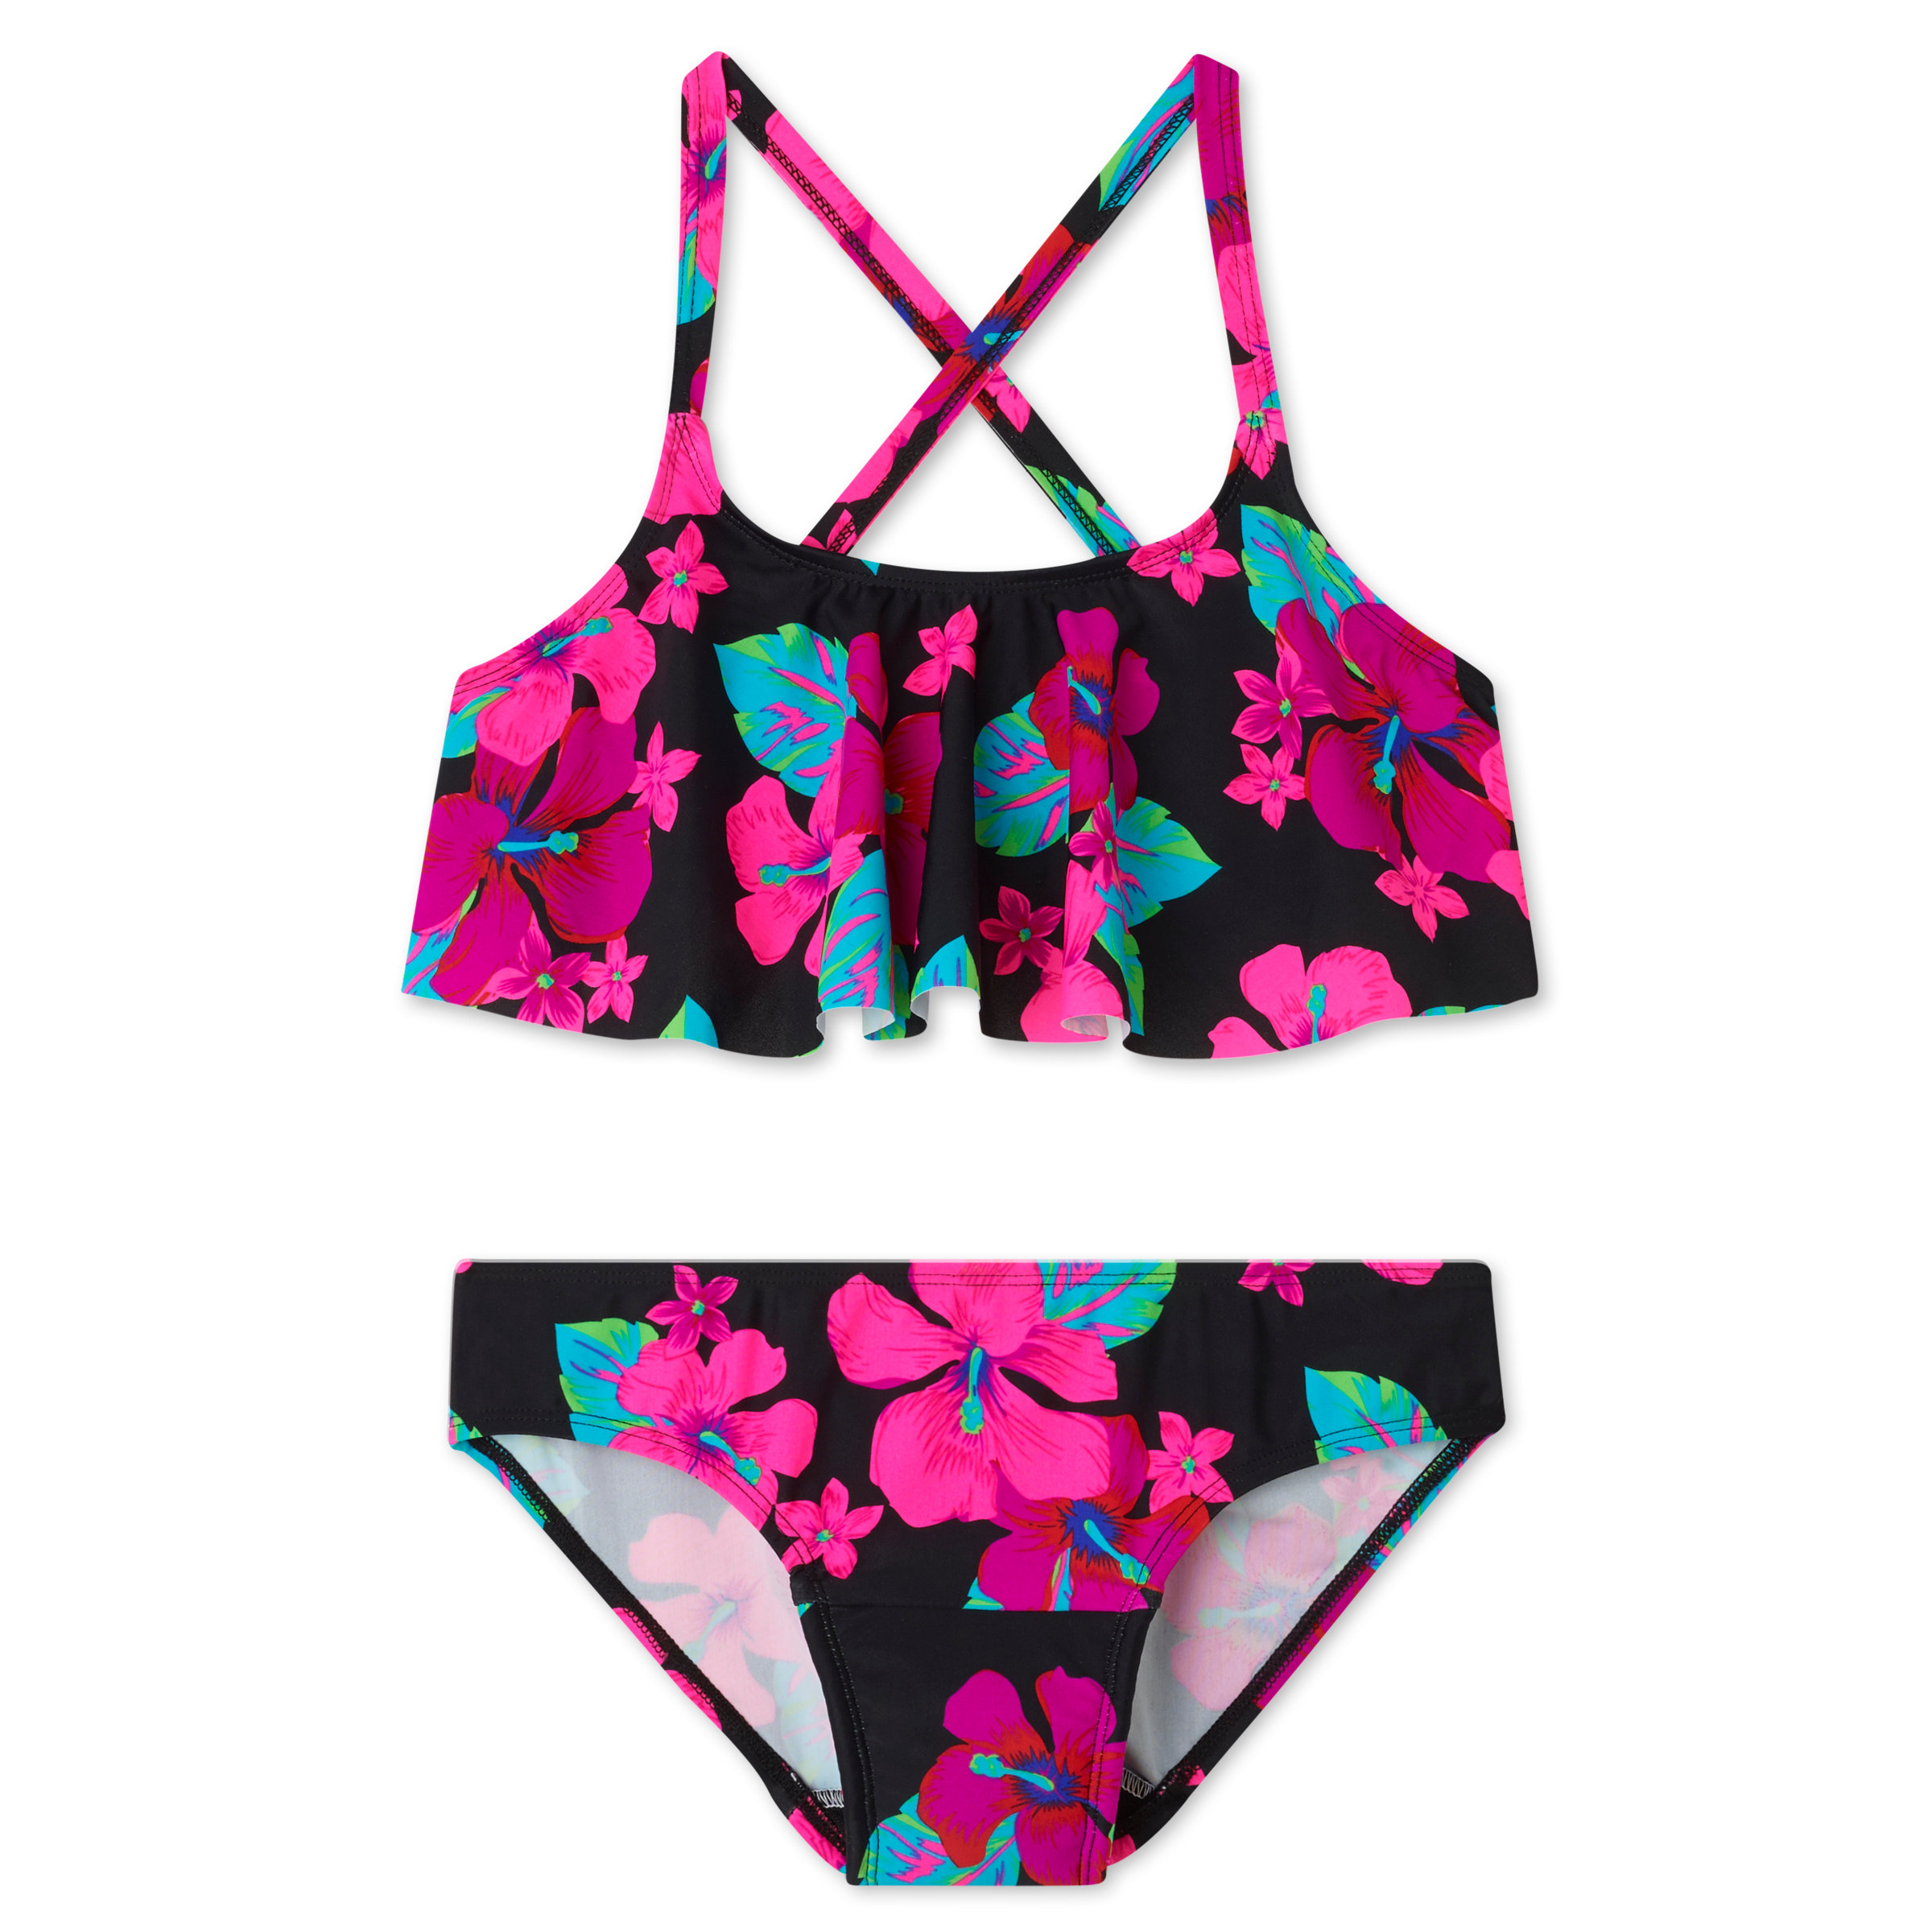 c76df8644 Swim and surf worry-free and in style with our Ruffle Two Piece Period  Swimsuit featuring Ruby Love's leak-proof technology, so you can swim,  paddleboard, ...